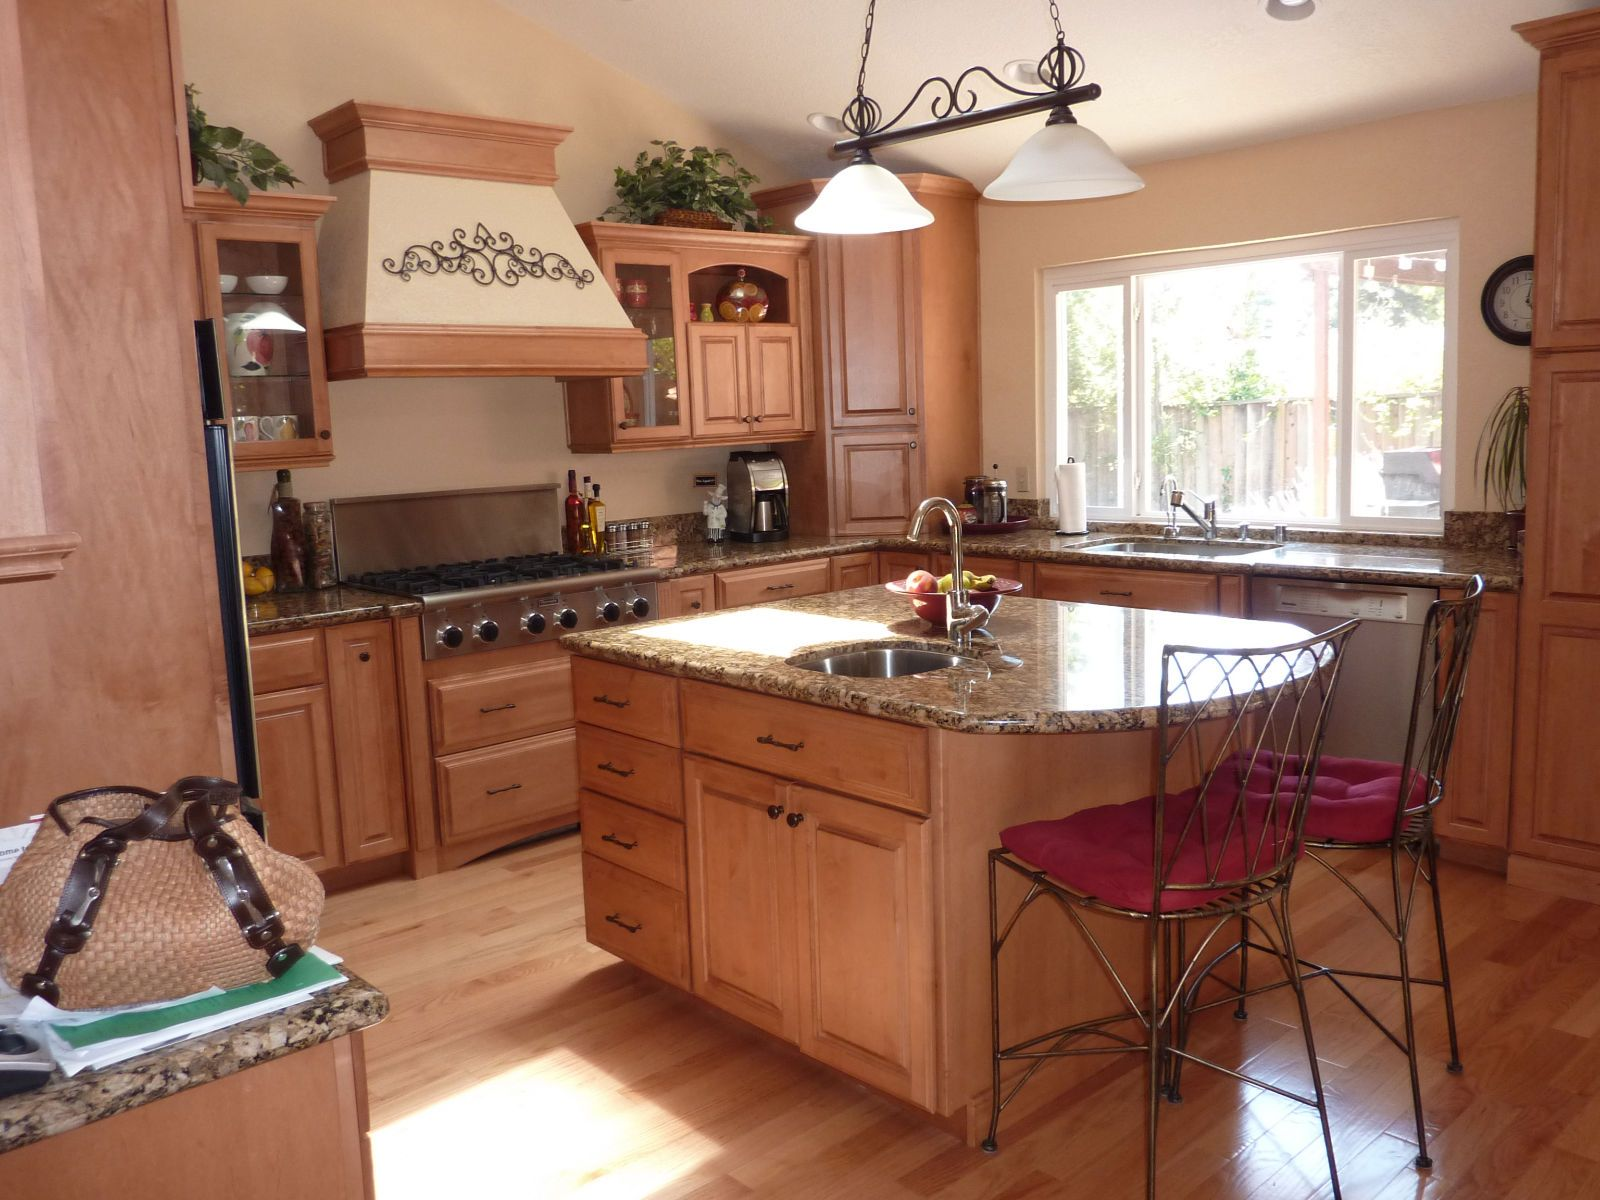 Kitchen Island With Seating Kitchen Islands With Storage And Seating Kitchen Islands Is